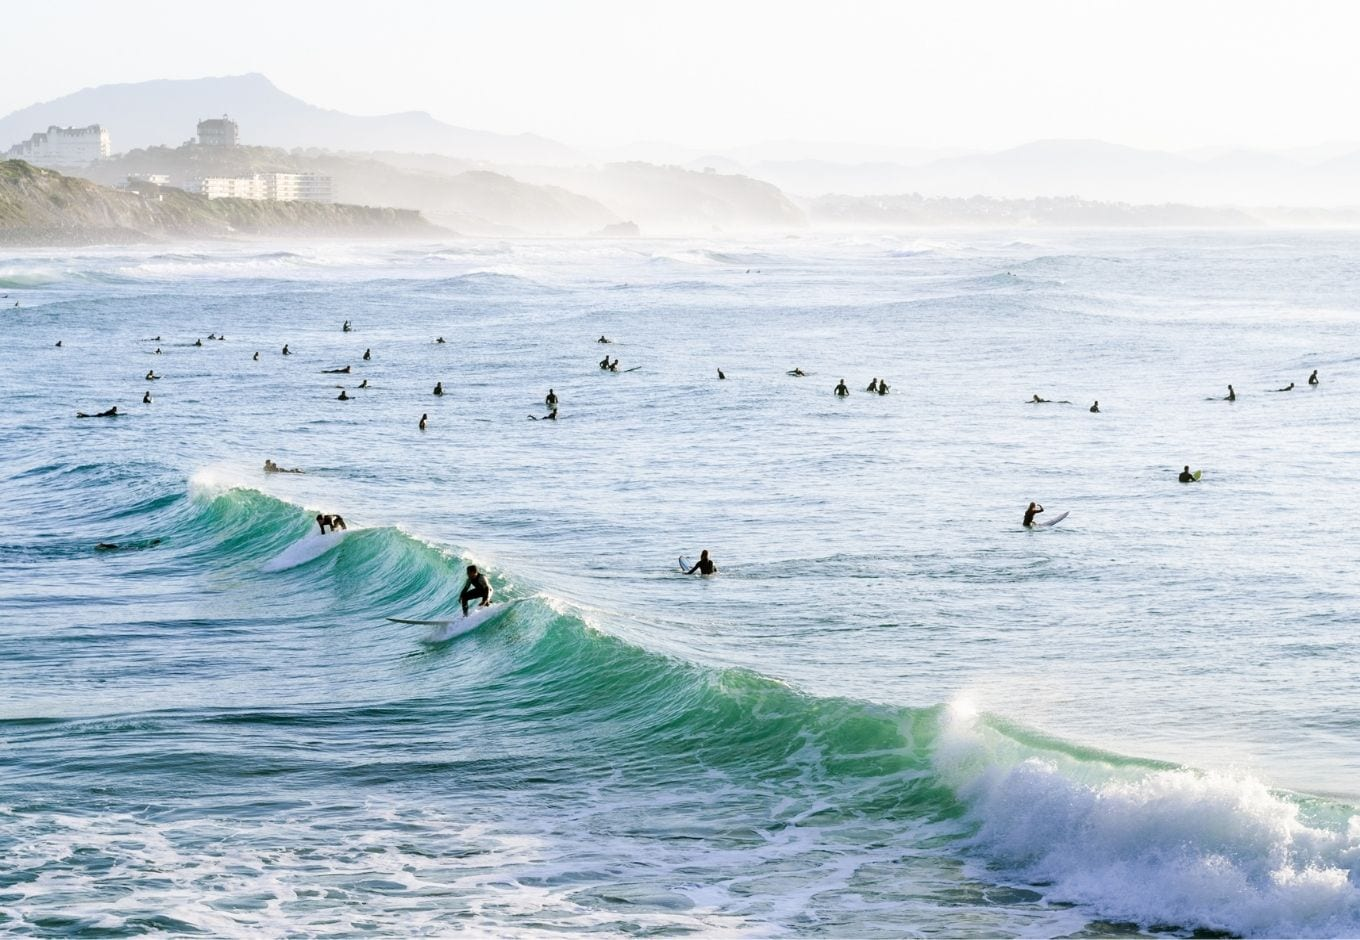 People surfing in Biarritz, France.